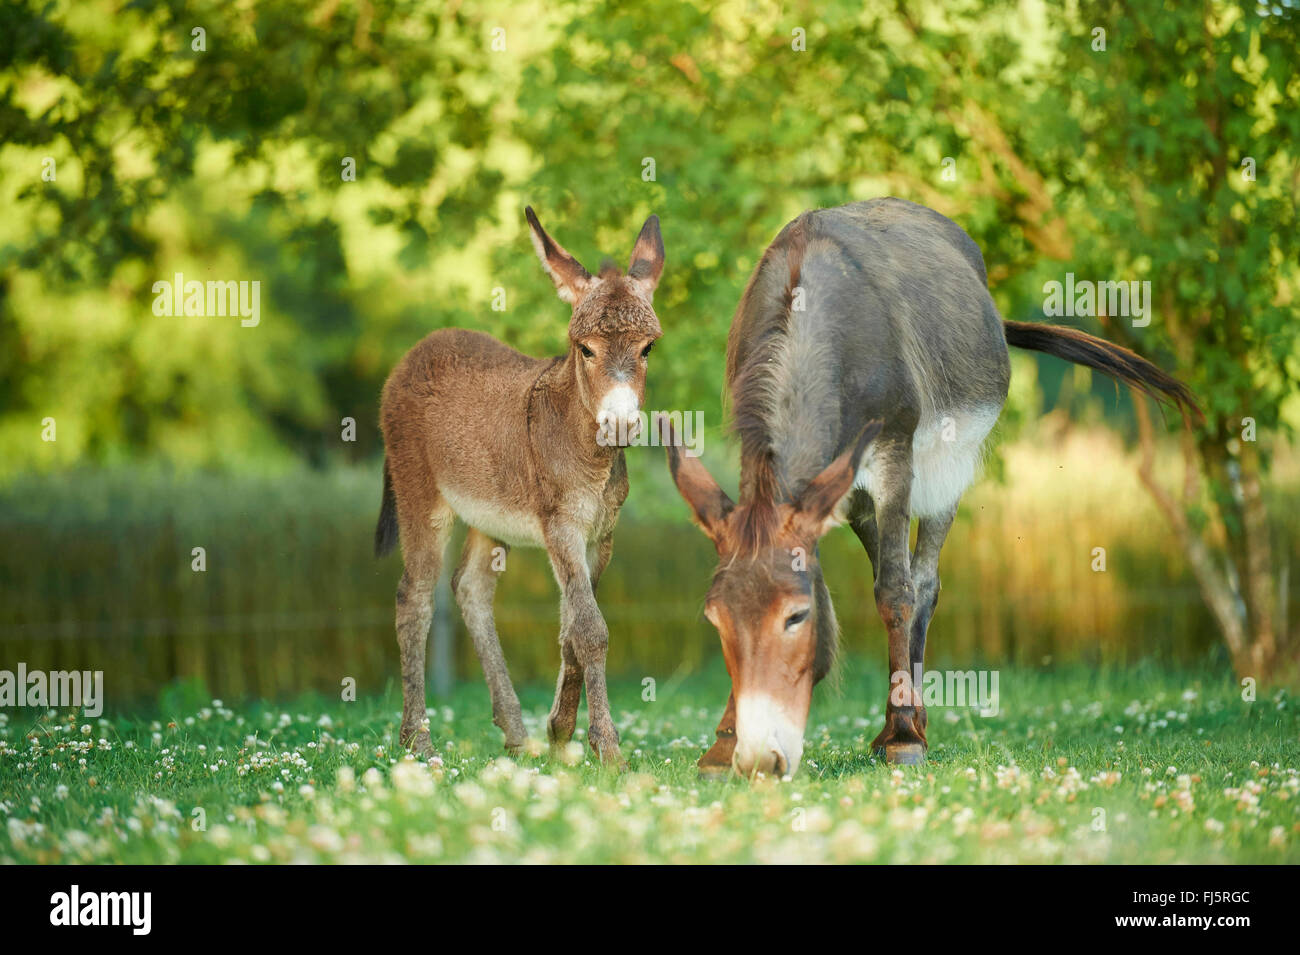 Domestic donkey (Equus asinus asinus), donkey mare with foal in a meadow, Germany Stock Photo